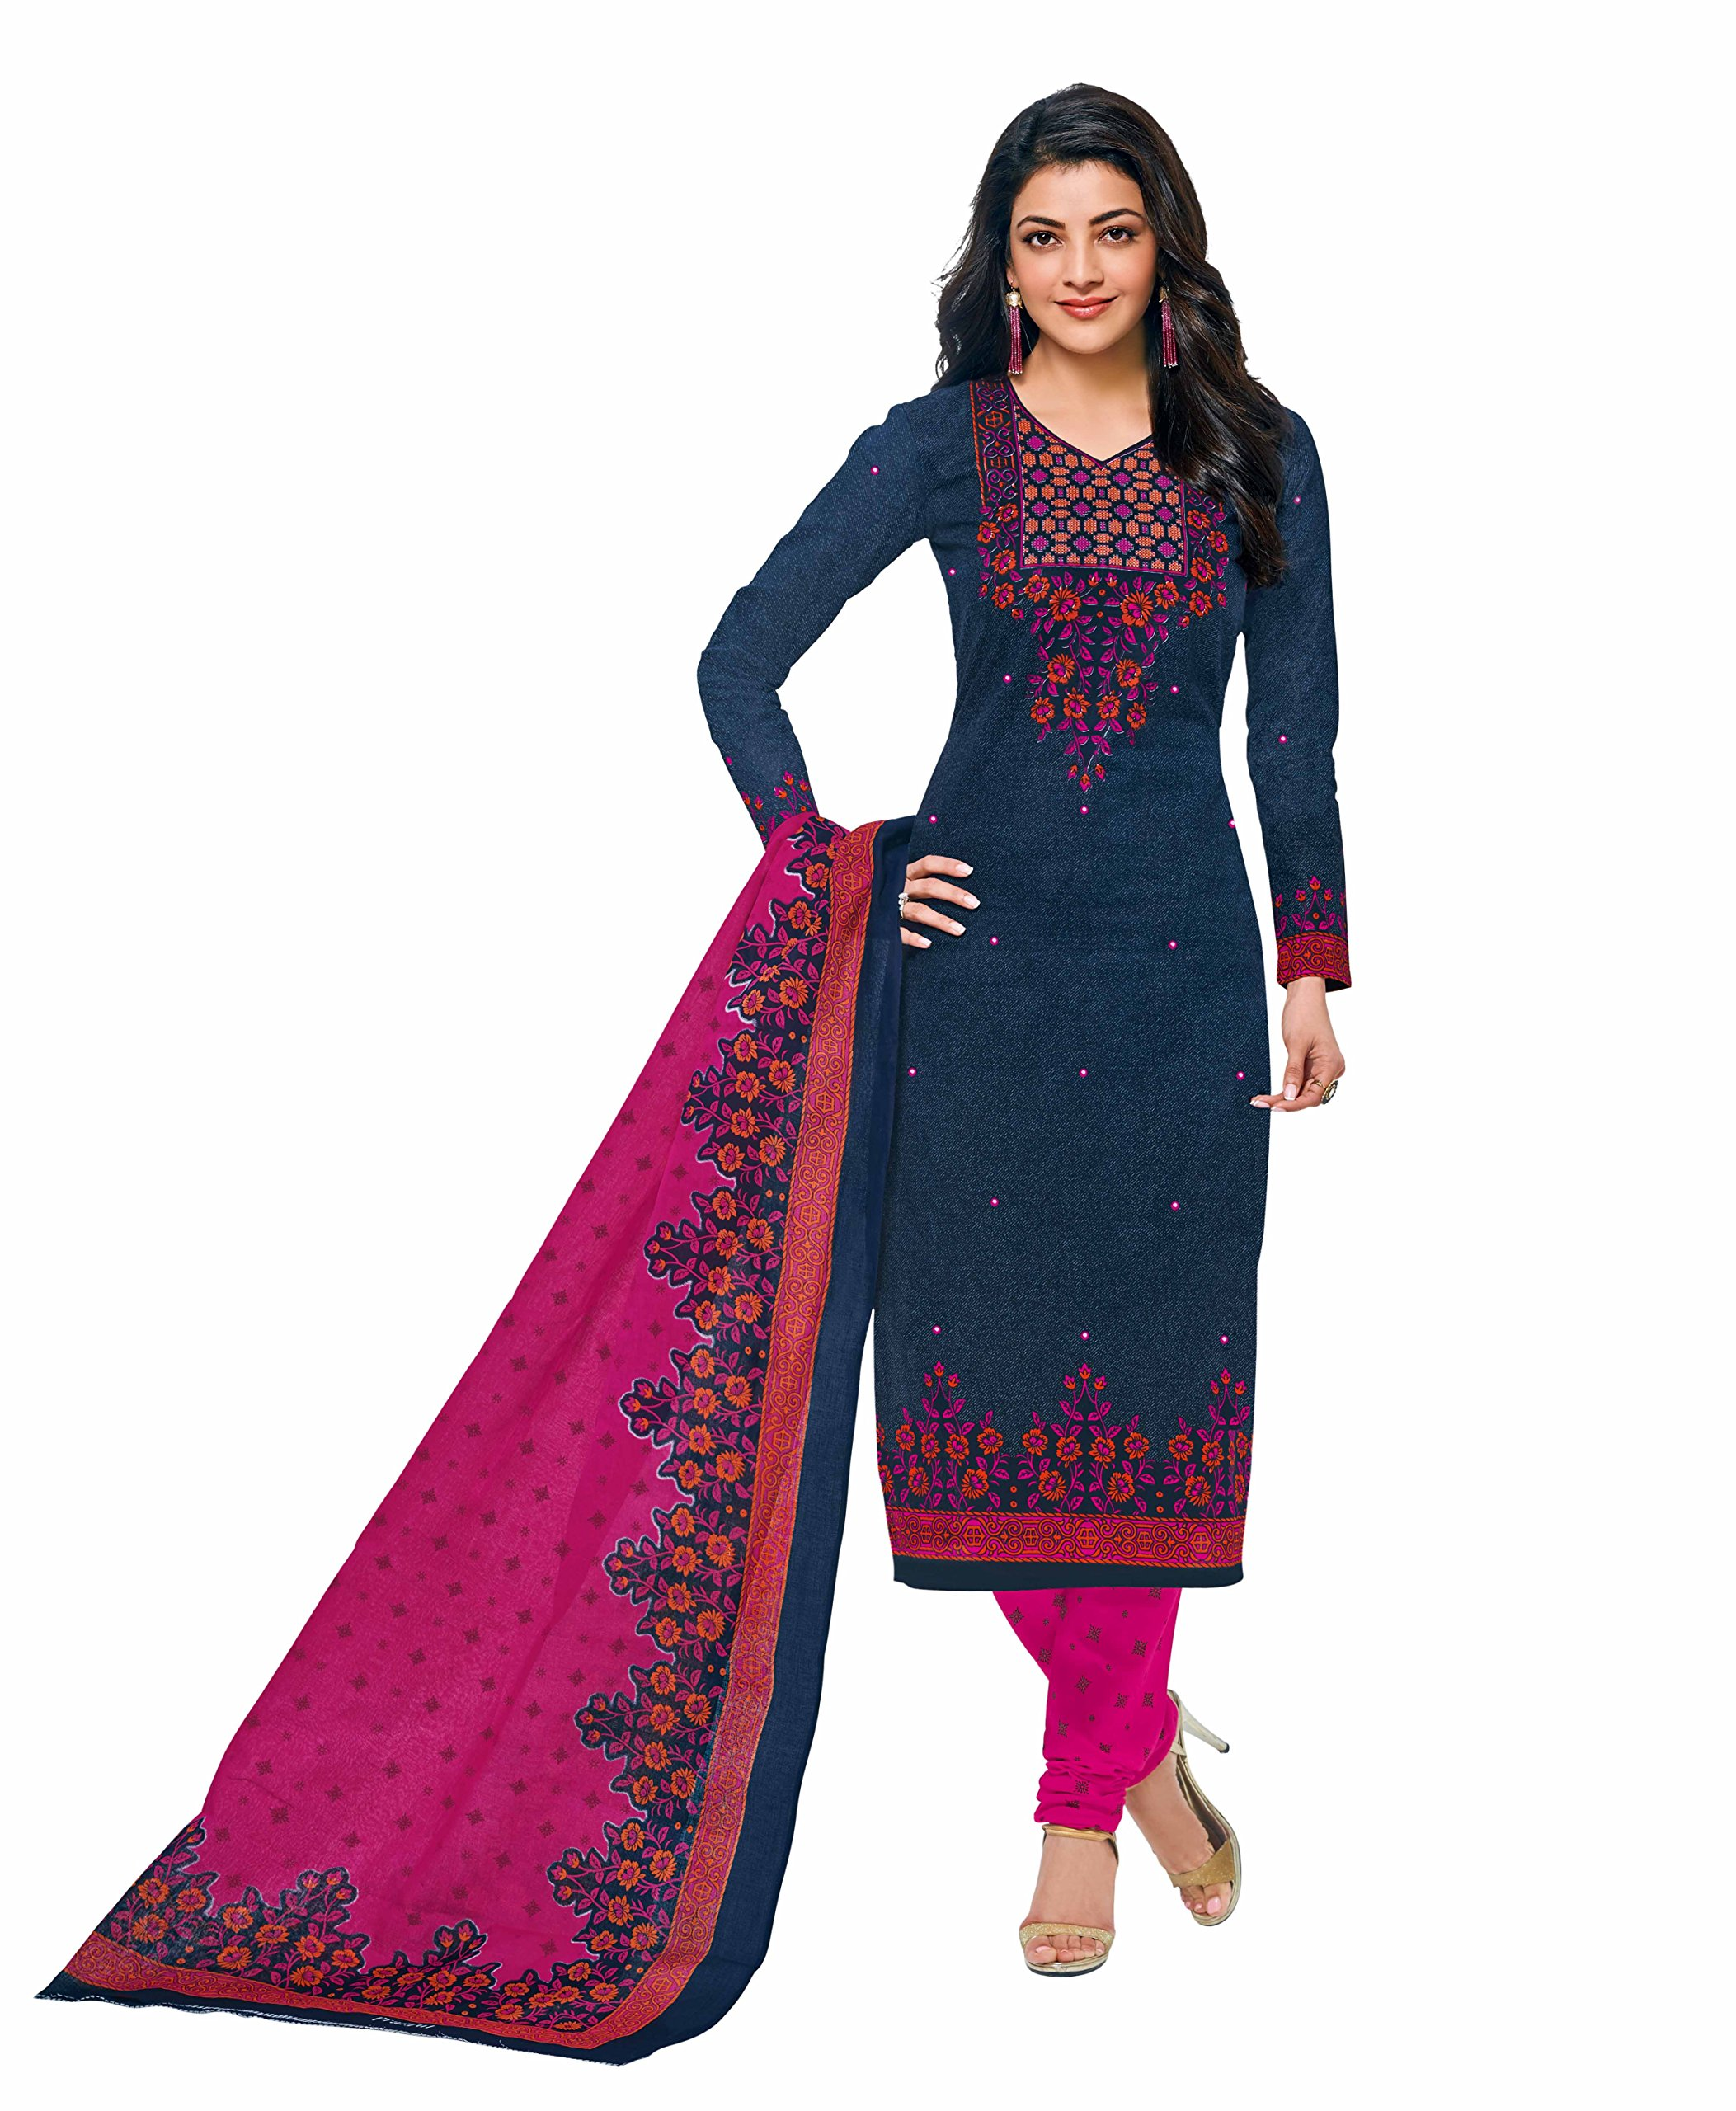 9da65df85d Miraan Women's Cotton Printed Unstitched Churidar Suit Dress Material(SGPRI601_Blue_Free  Size) - Gia Designer